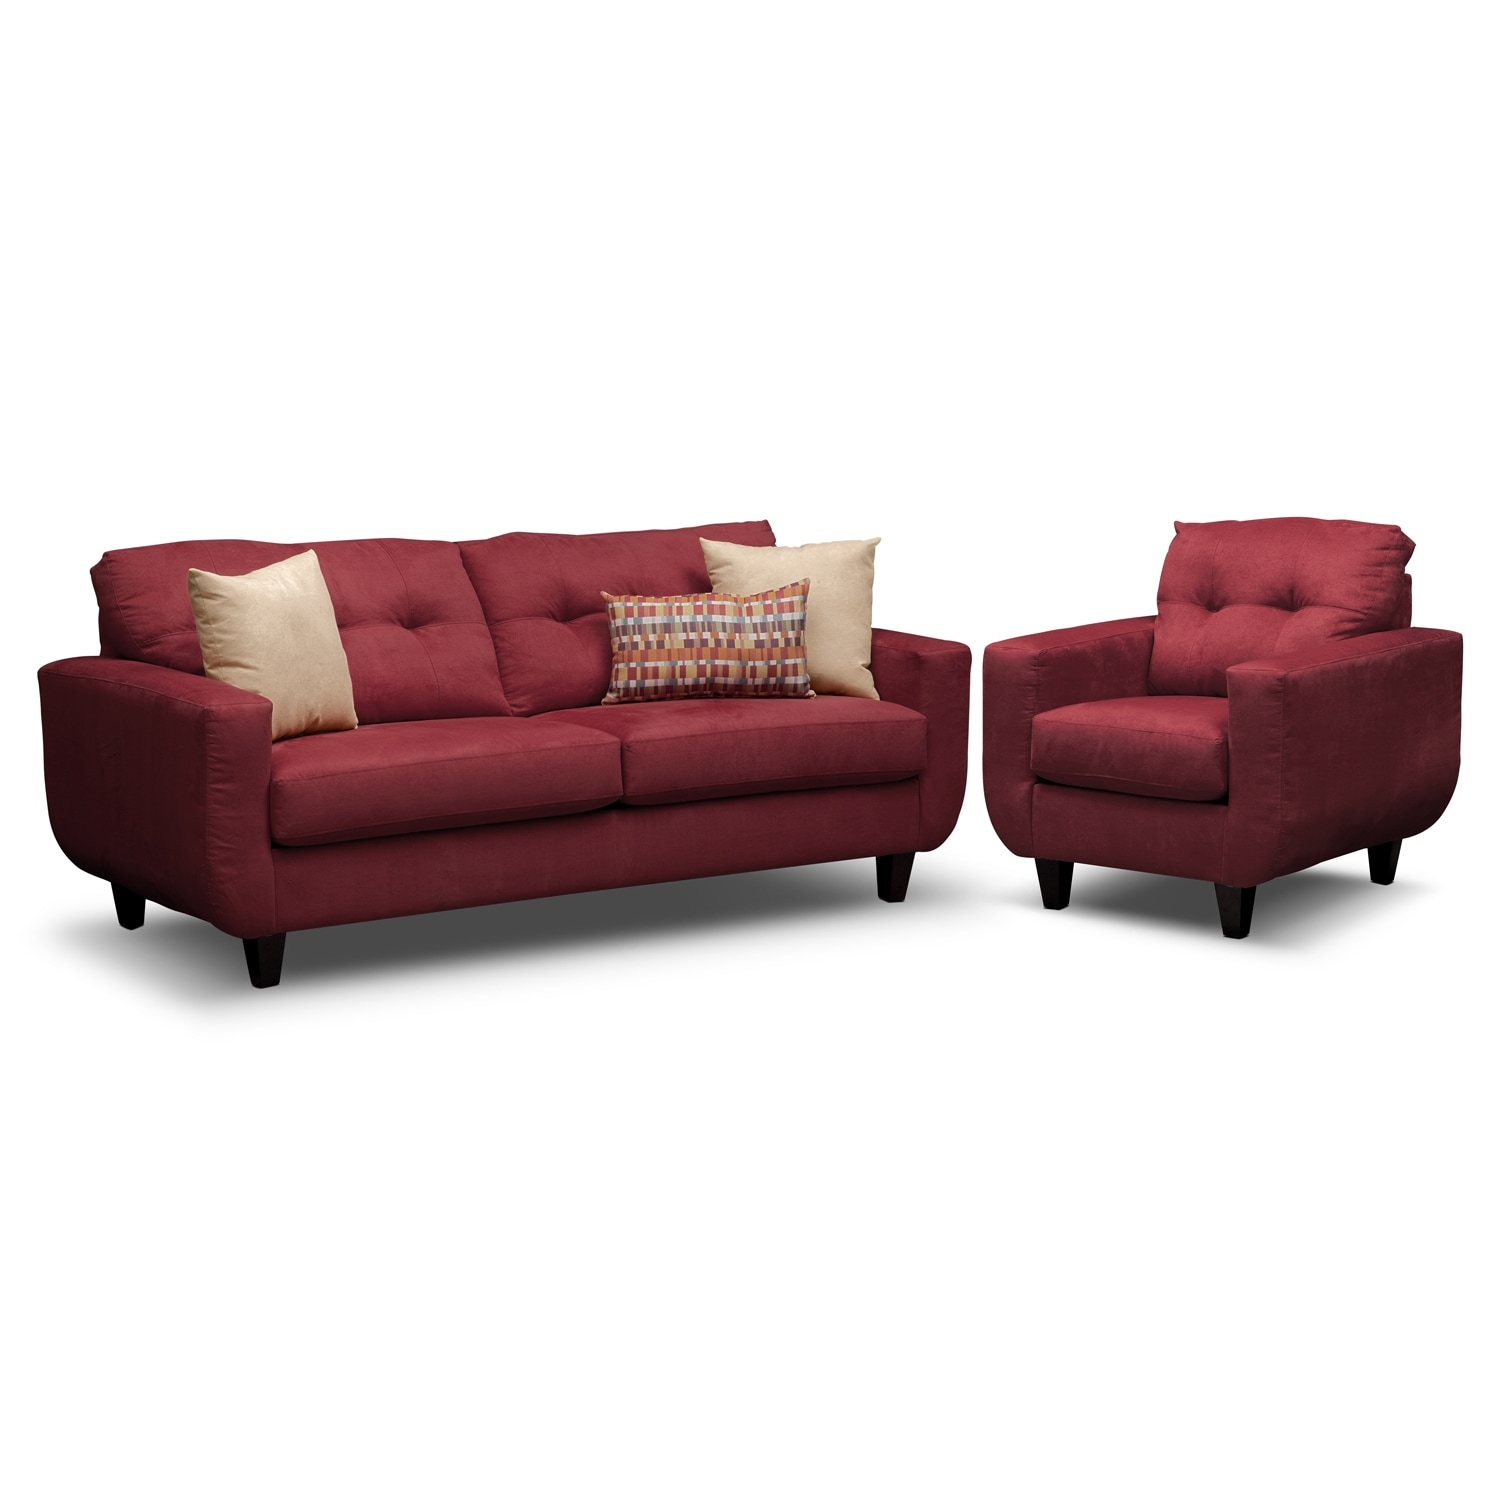 Living Room Furniture - West Village Sofa and Chair Set - Red